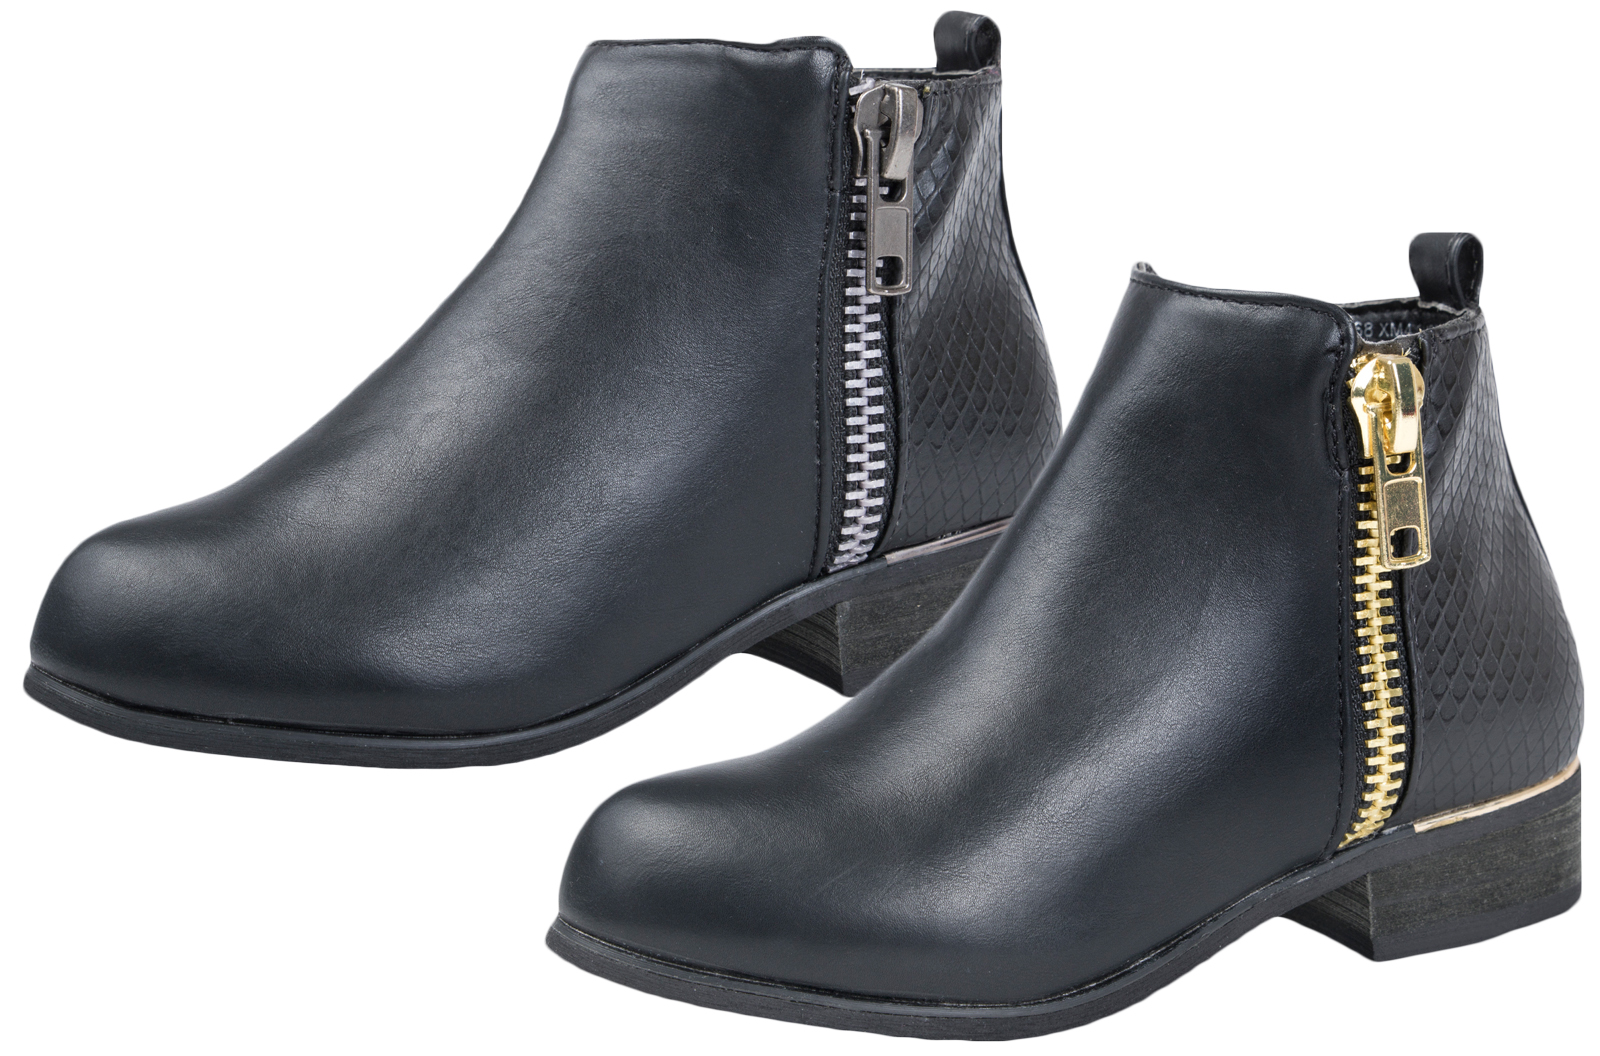 Details about Girls Faux Leather Chelsea Ankle Boots Casual Black School  Shoes Kids Size